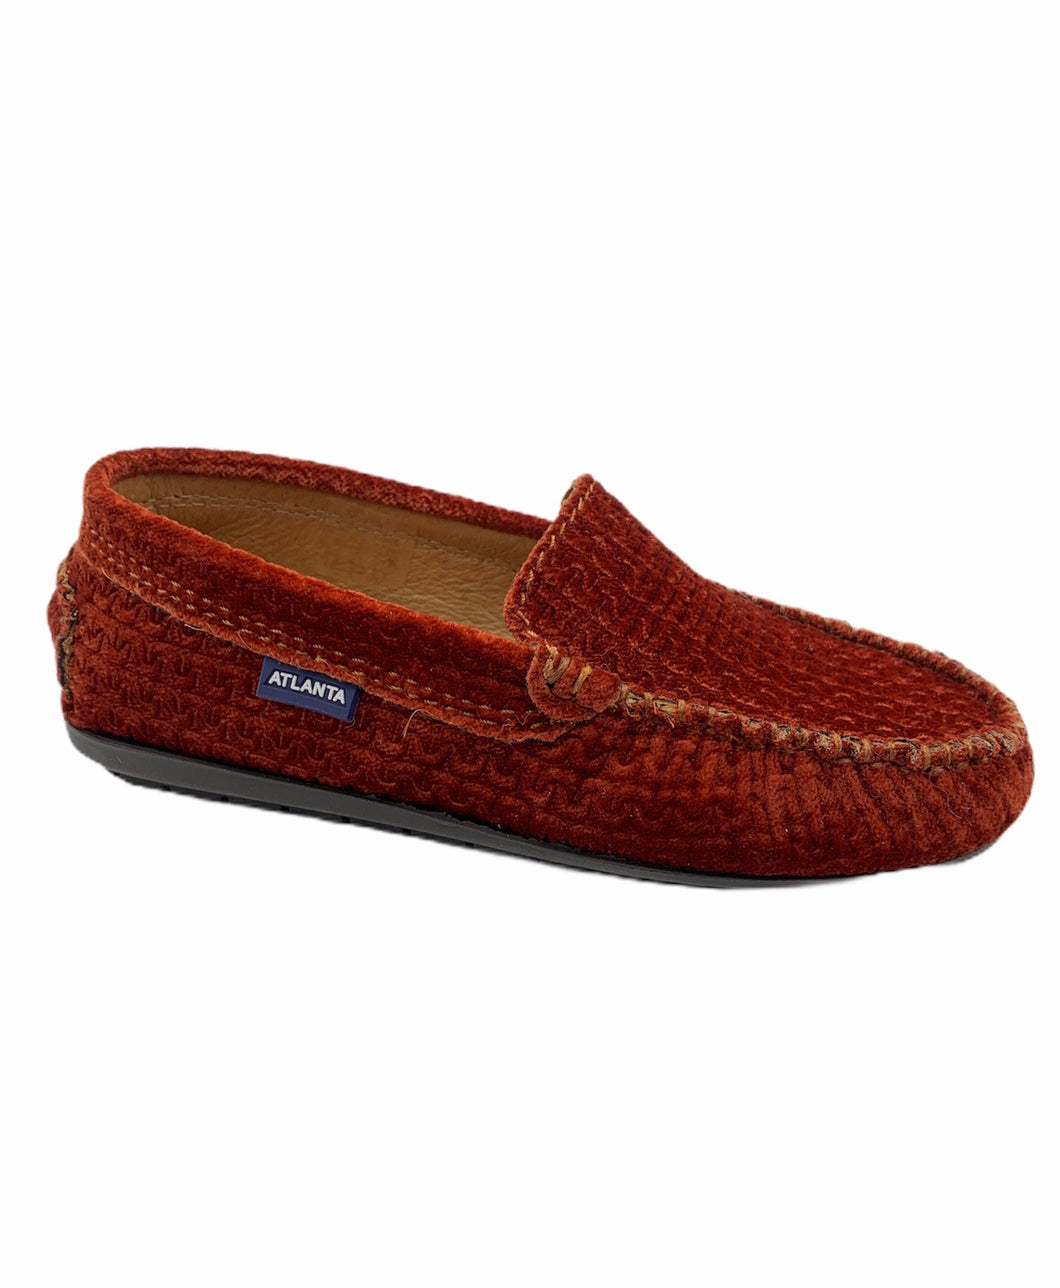 Atlanta Mocassin Rust Velvet Chain Print Loafer 15939